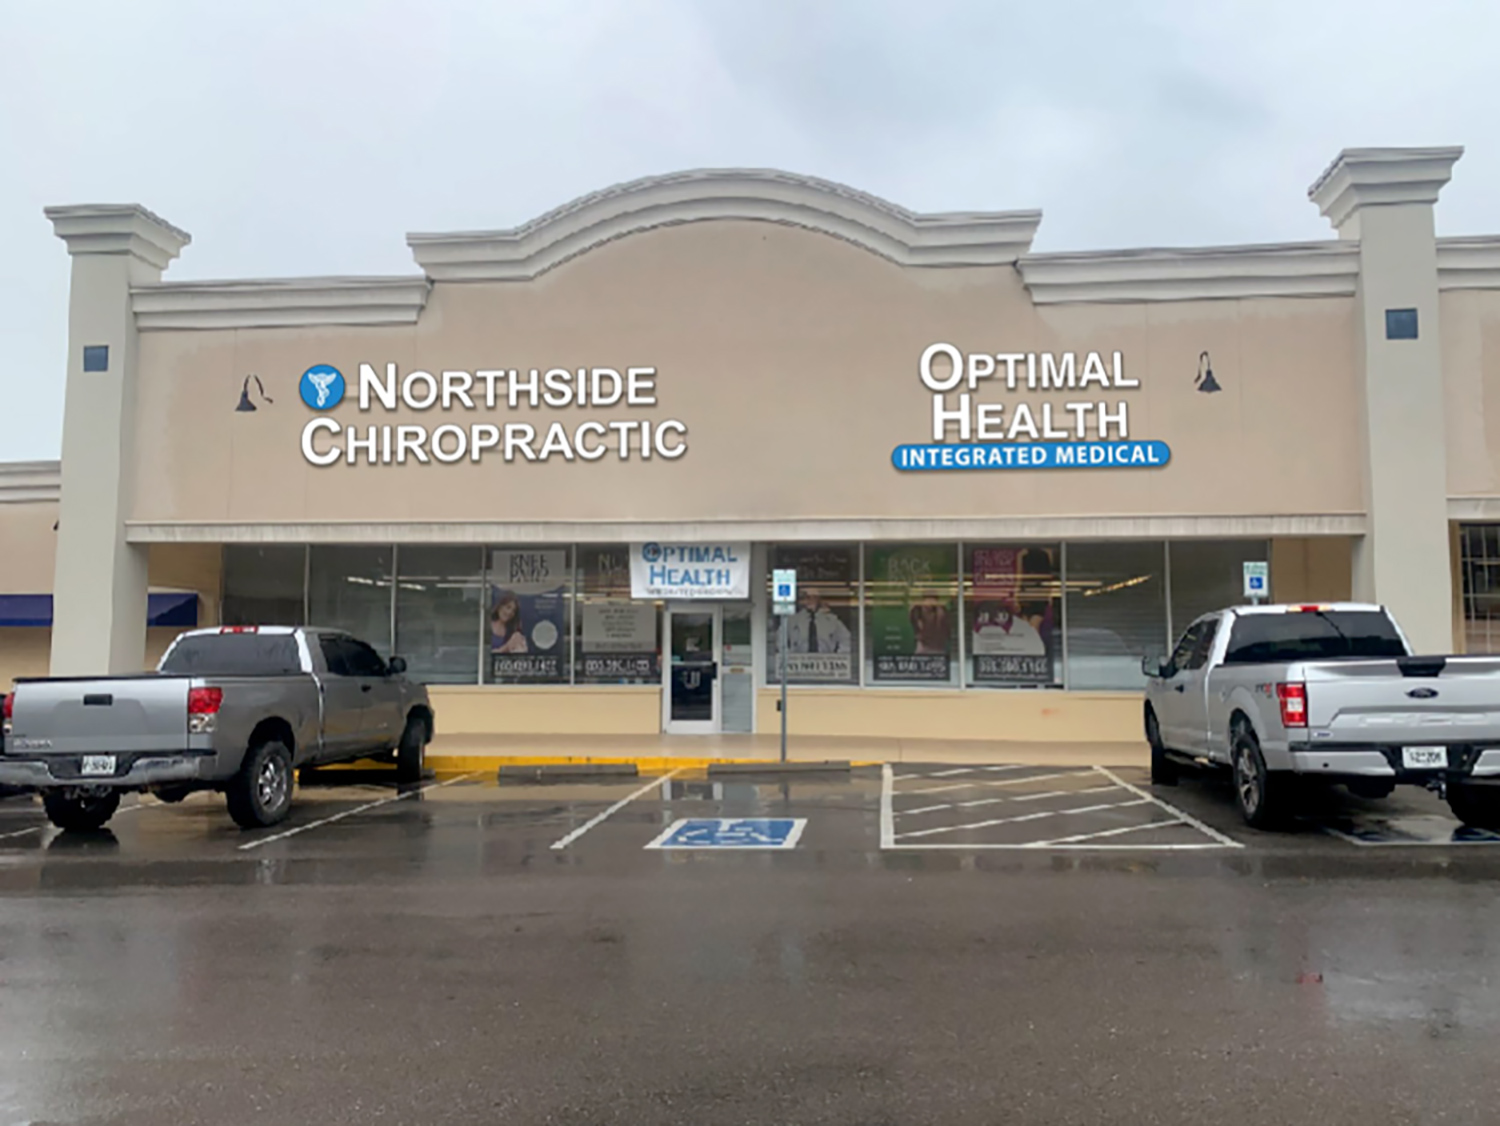 Tazewell Pike Northside Chiropractic